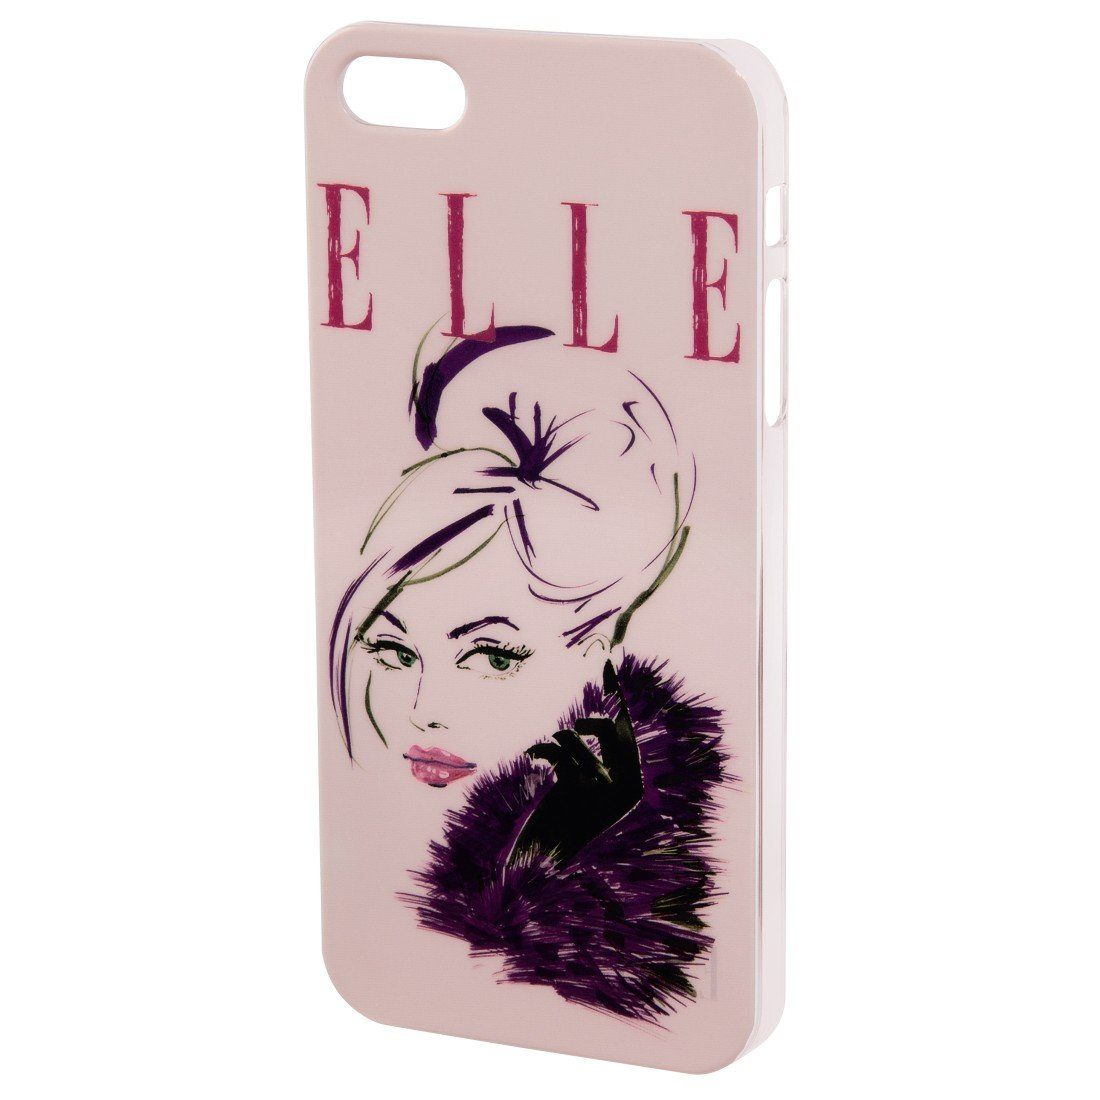 ELLE Handy-Cover Lady in Pink für Apple iPhone 5/5s/SE, Rosa